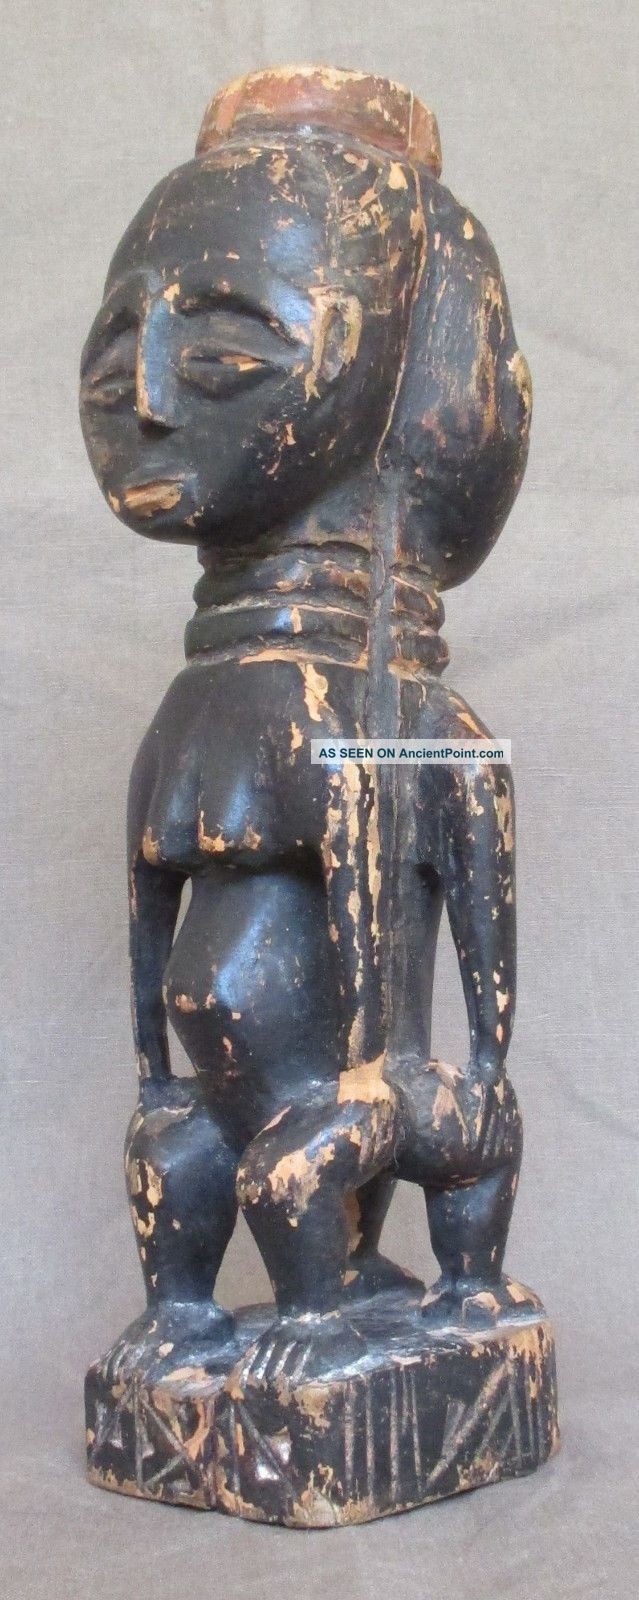 Rare Baoule Janus Carving - Guinean Forest (former ' Aof ') - Early 1900 Sculptures & Statues photo